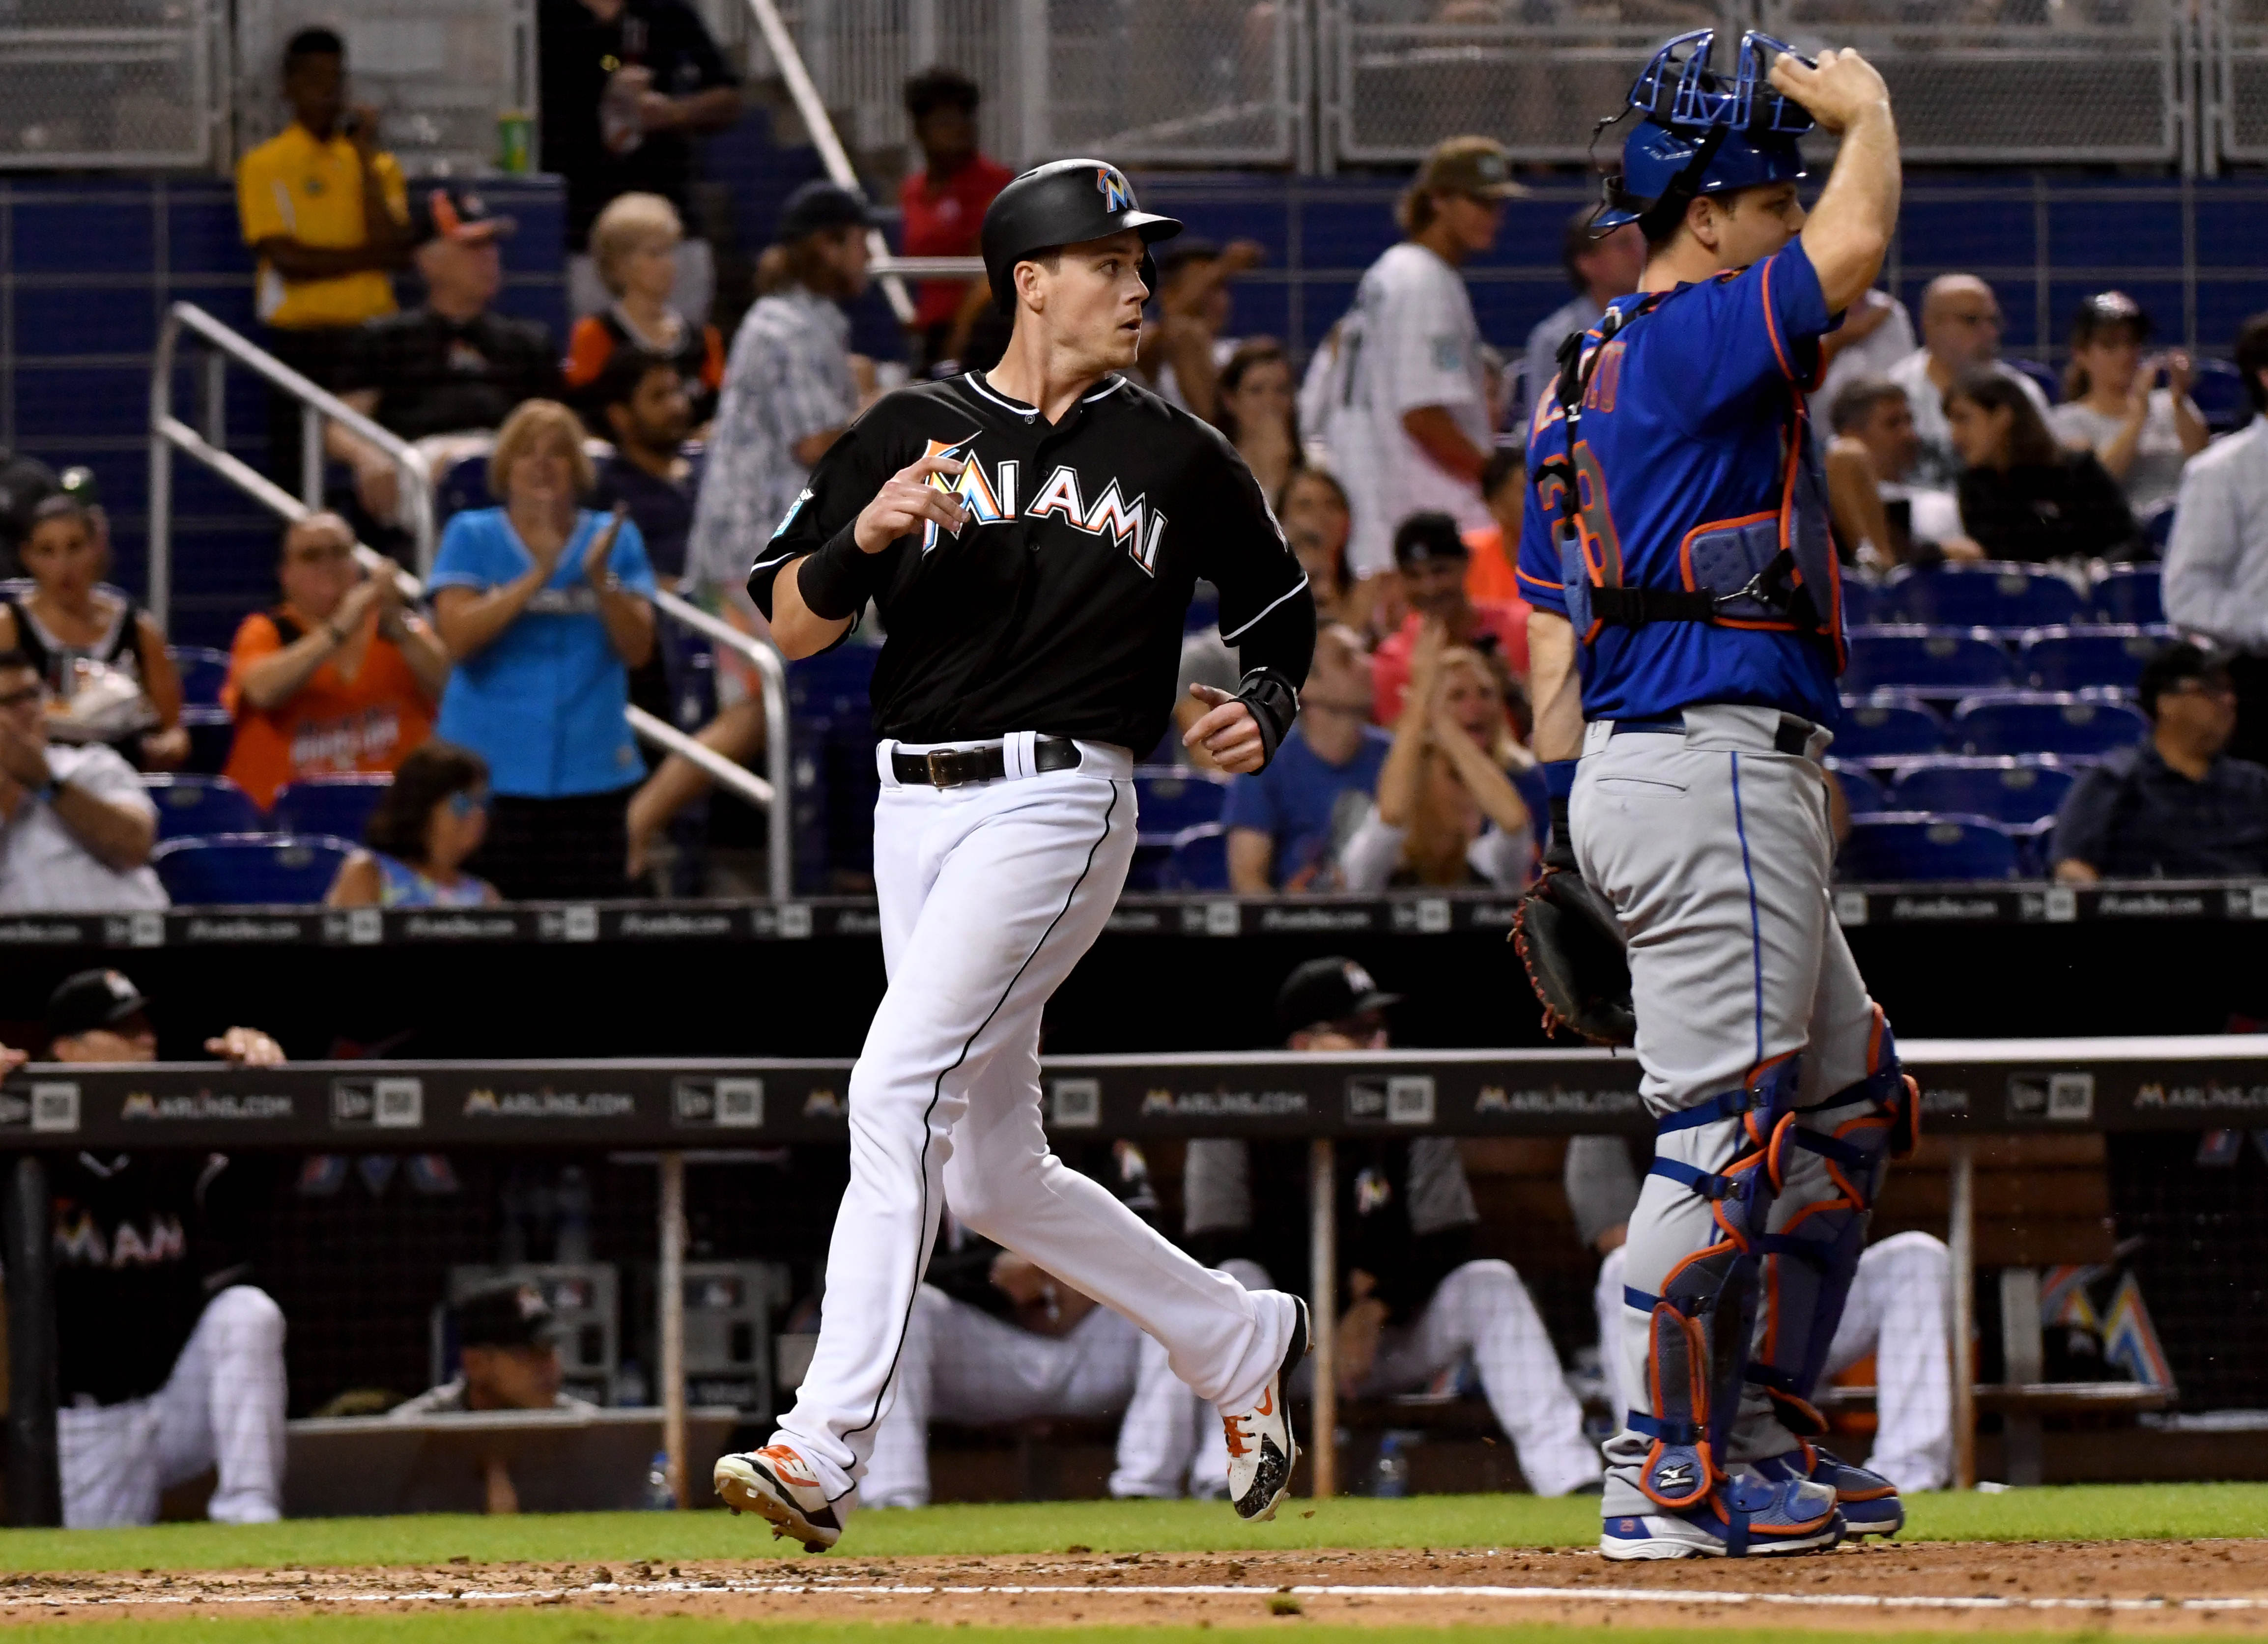 6/30/18 Game Preview: New York Mets at Miami Marlins